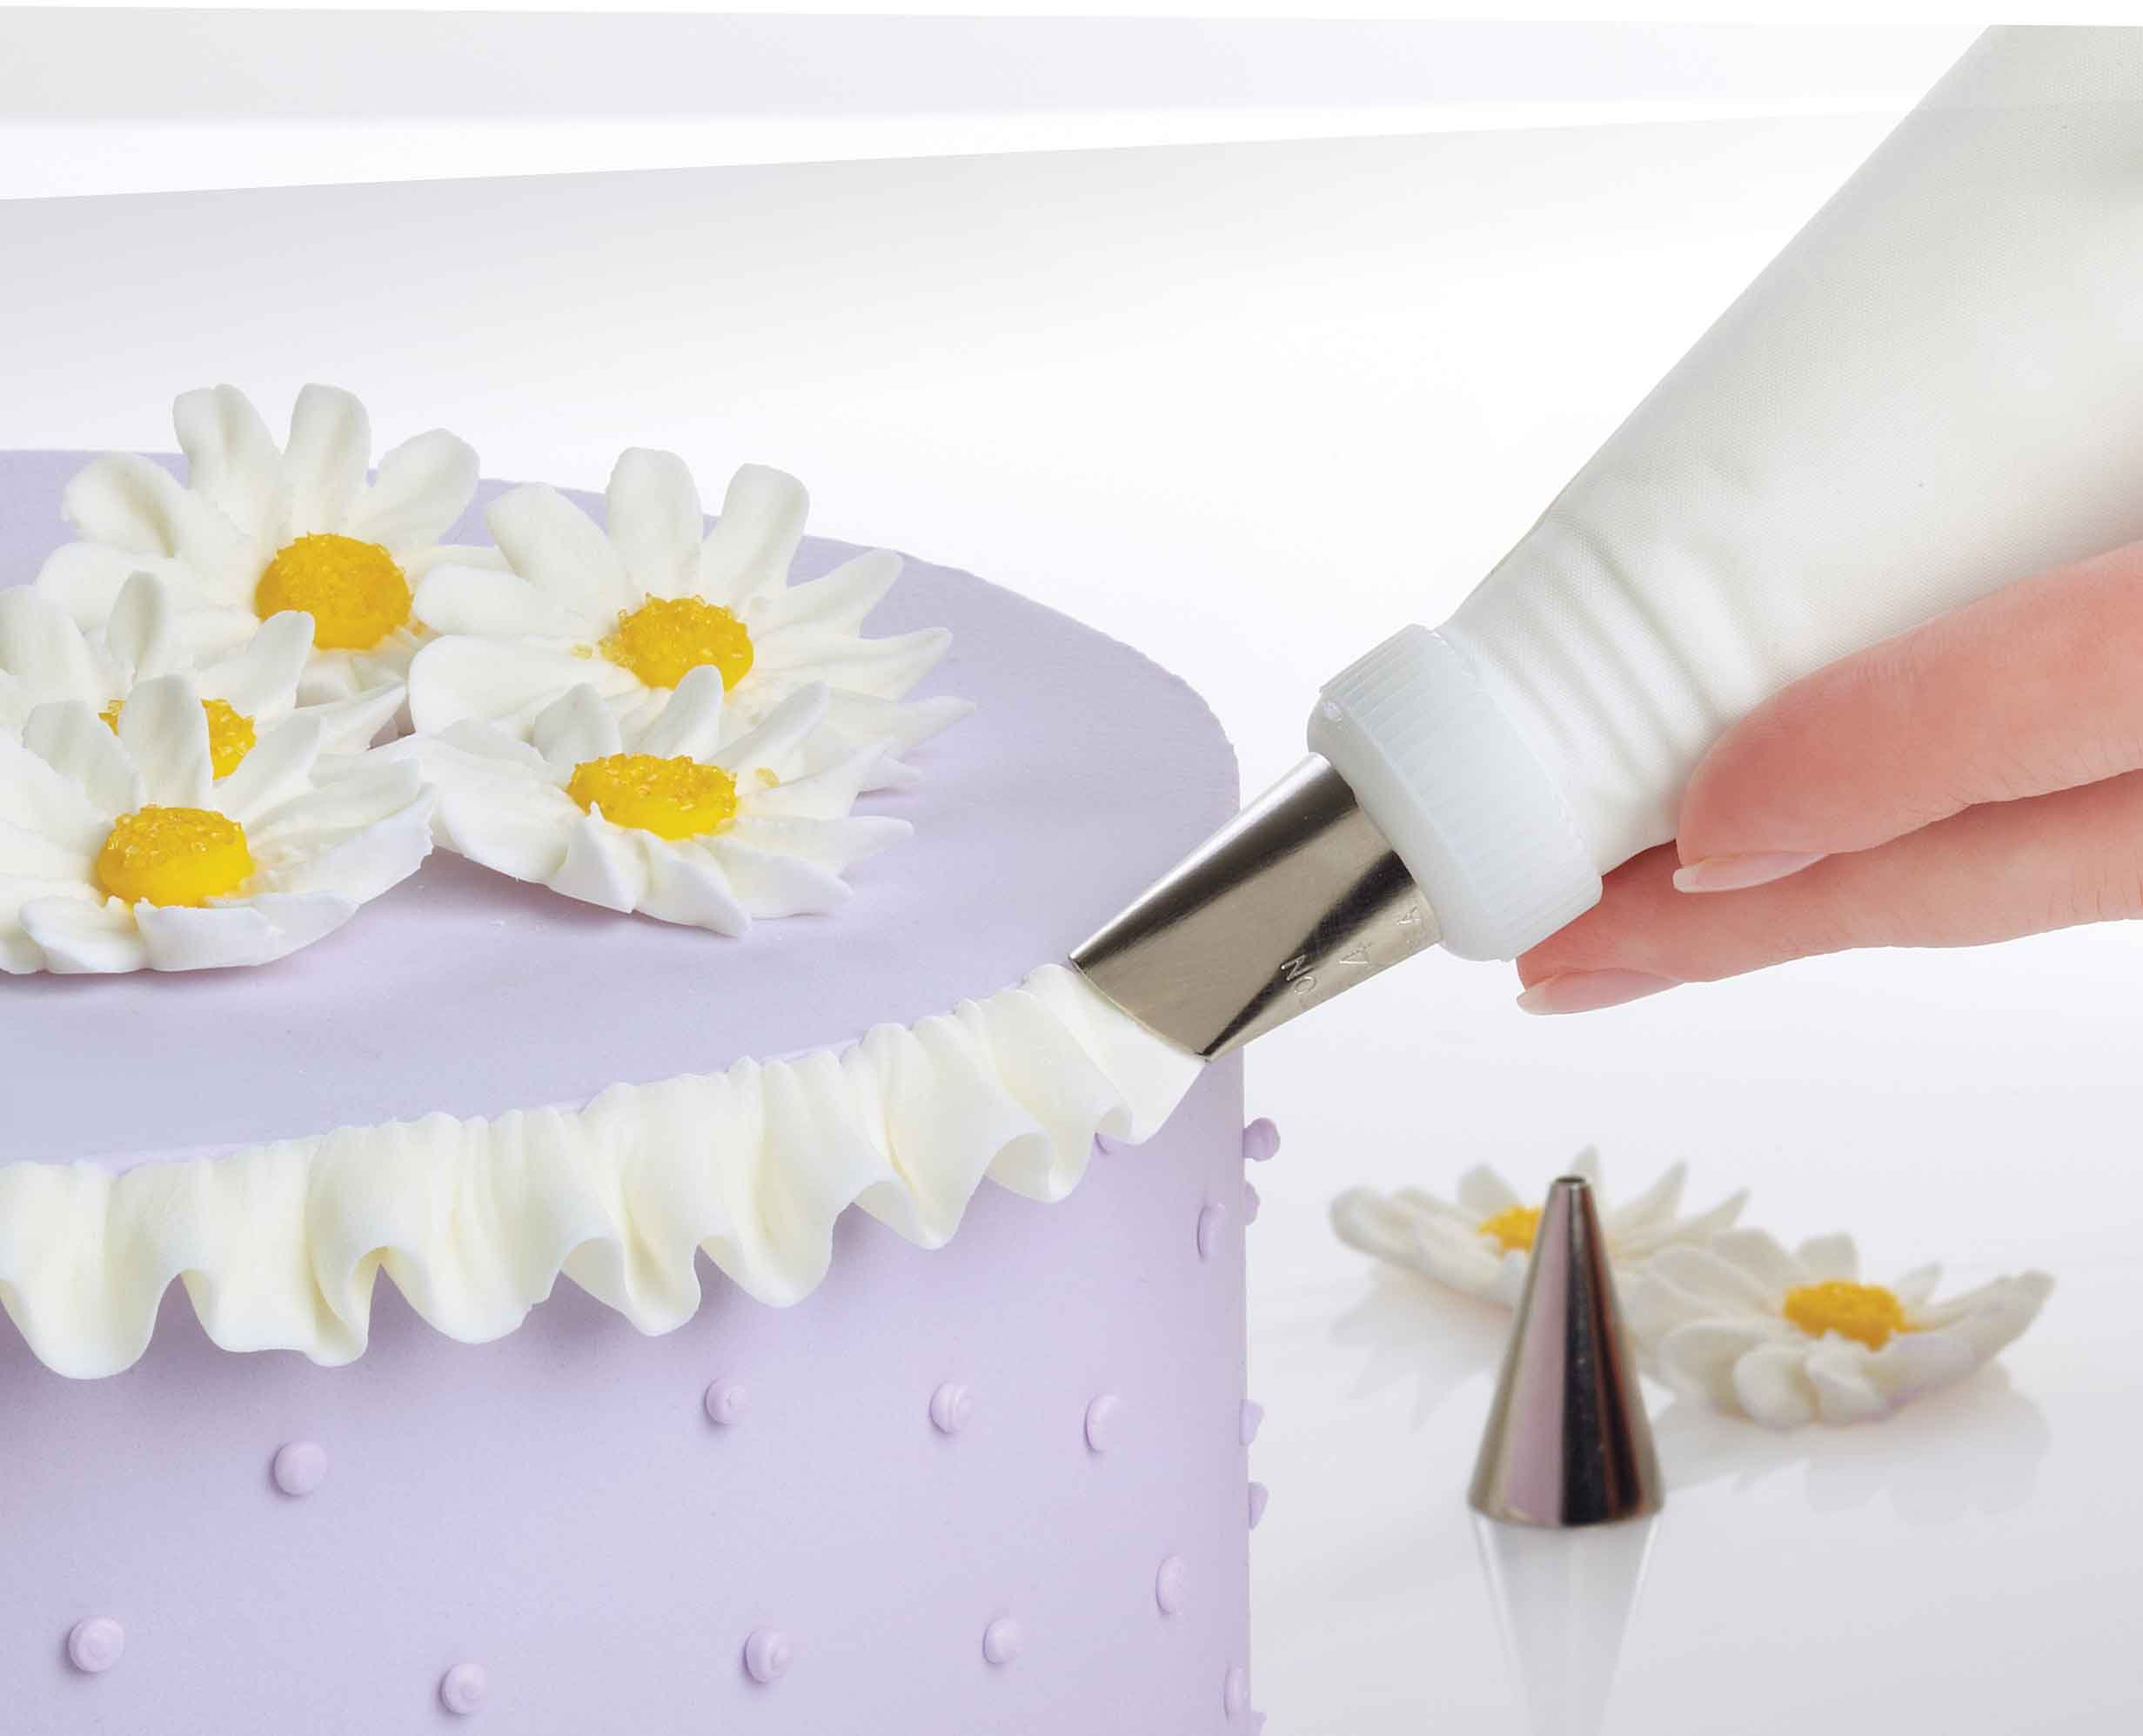 Professional Cake Decorating Bags : Cake Decorating Equipment. DayMark IT115436 18